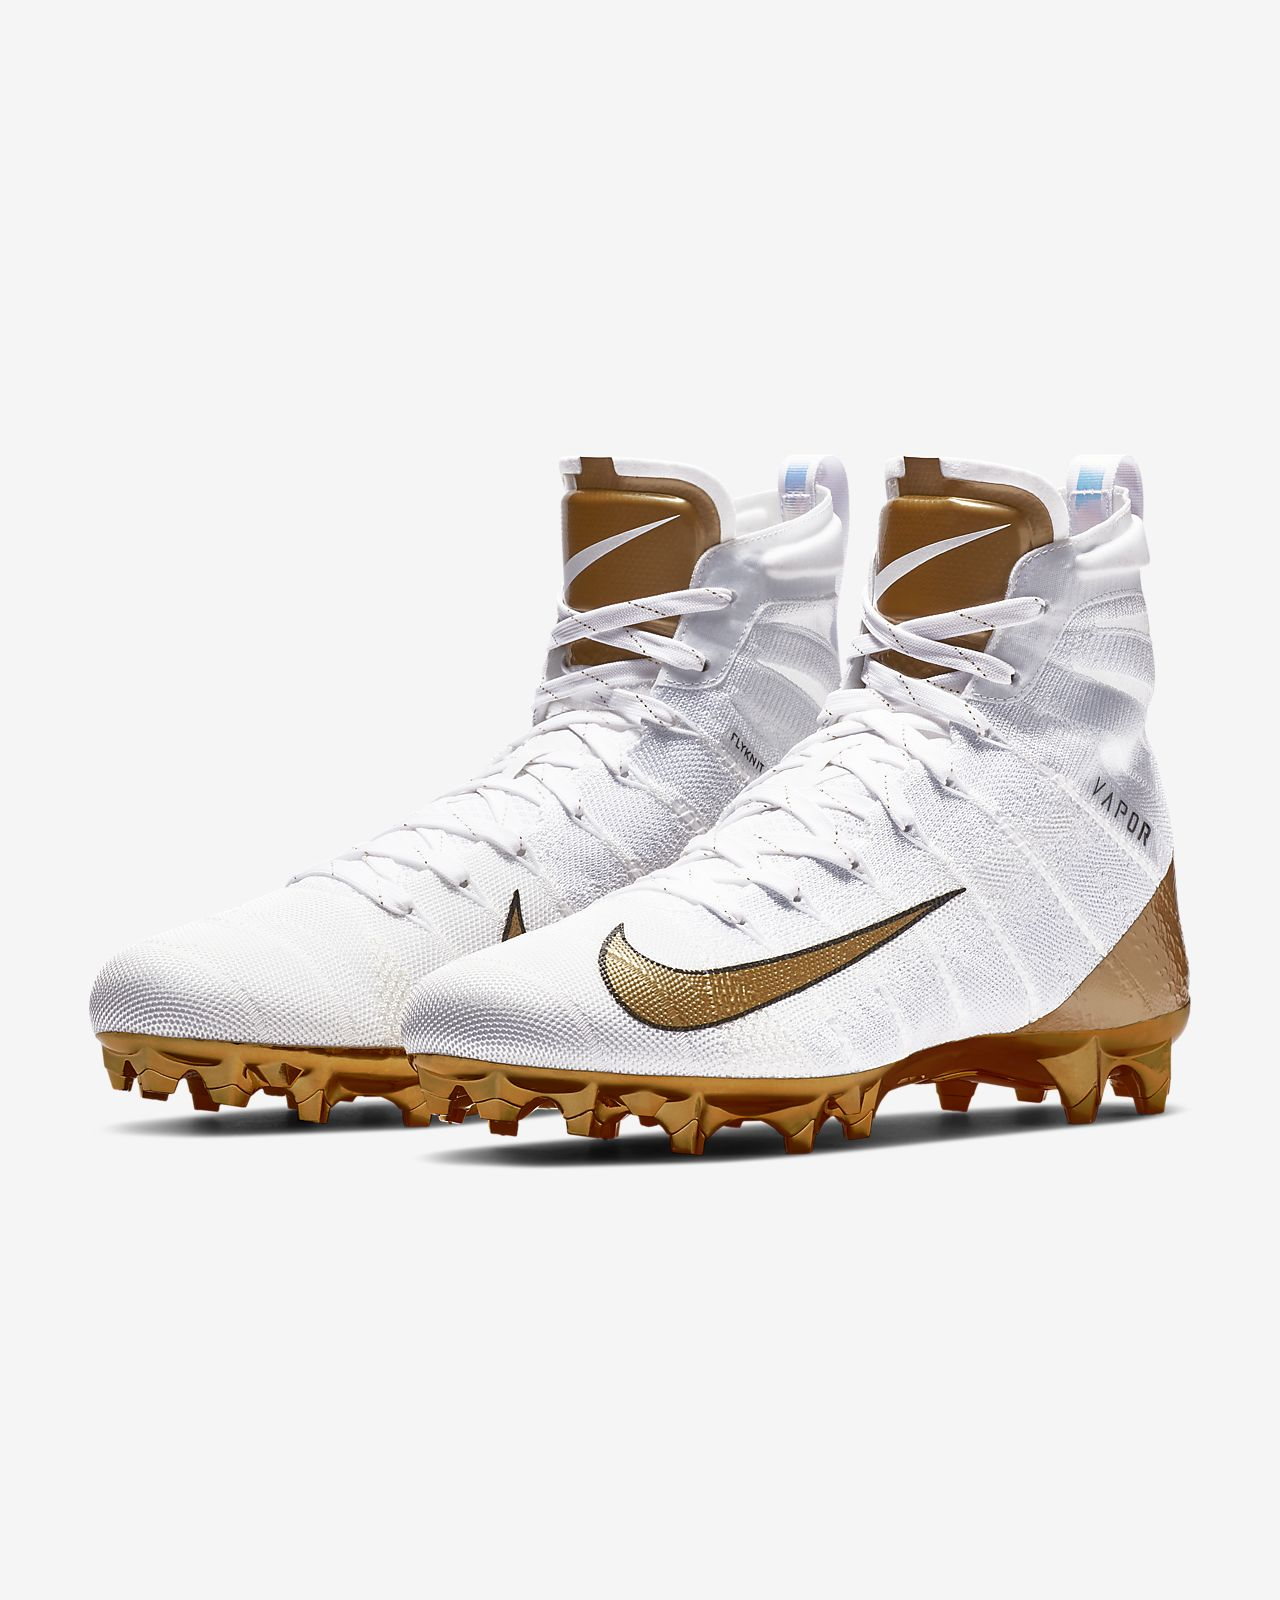 401428372 Nike Vapor Untouchable 3 Elite Football Cleat. Nike.com